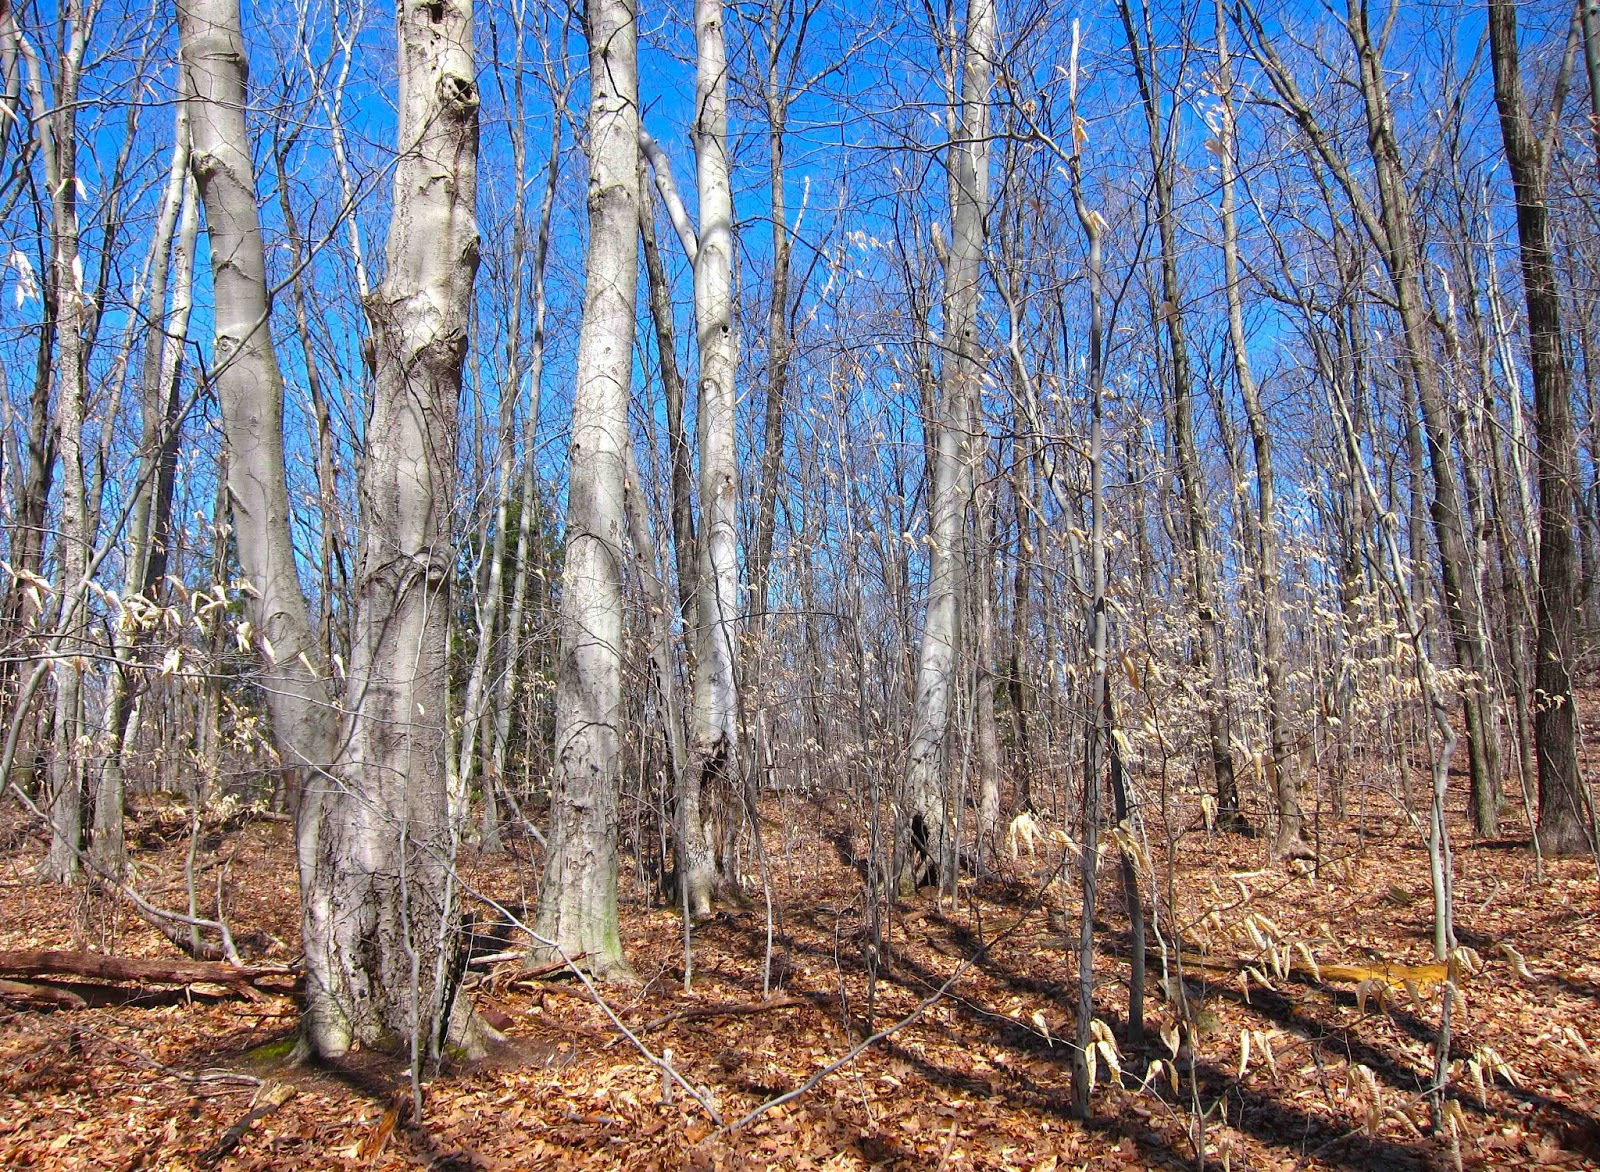 Saratoga Woods And Waterways Beeches In Desperate Straits Proper usage and audio pronunciation (plus ipa phonetic transcription) of the word desperate straits. saratoga woods and waterways beeches